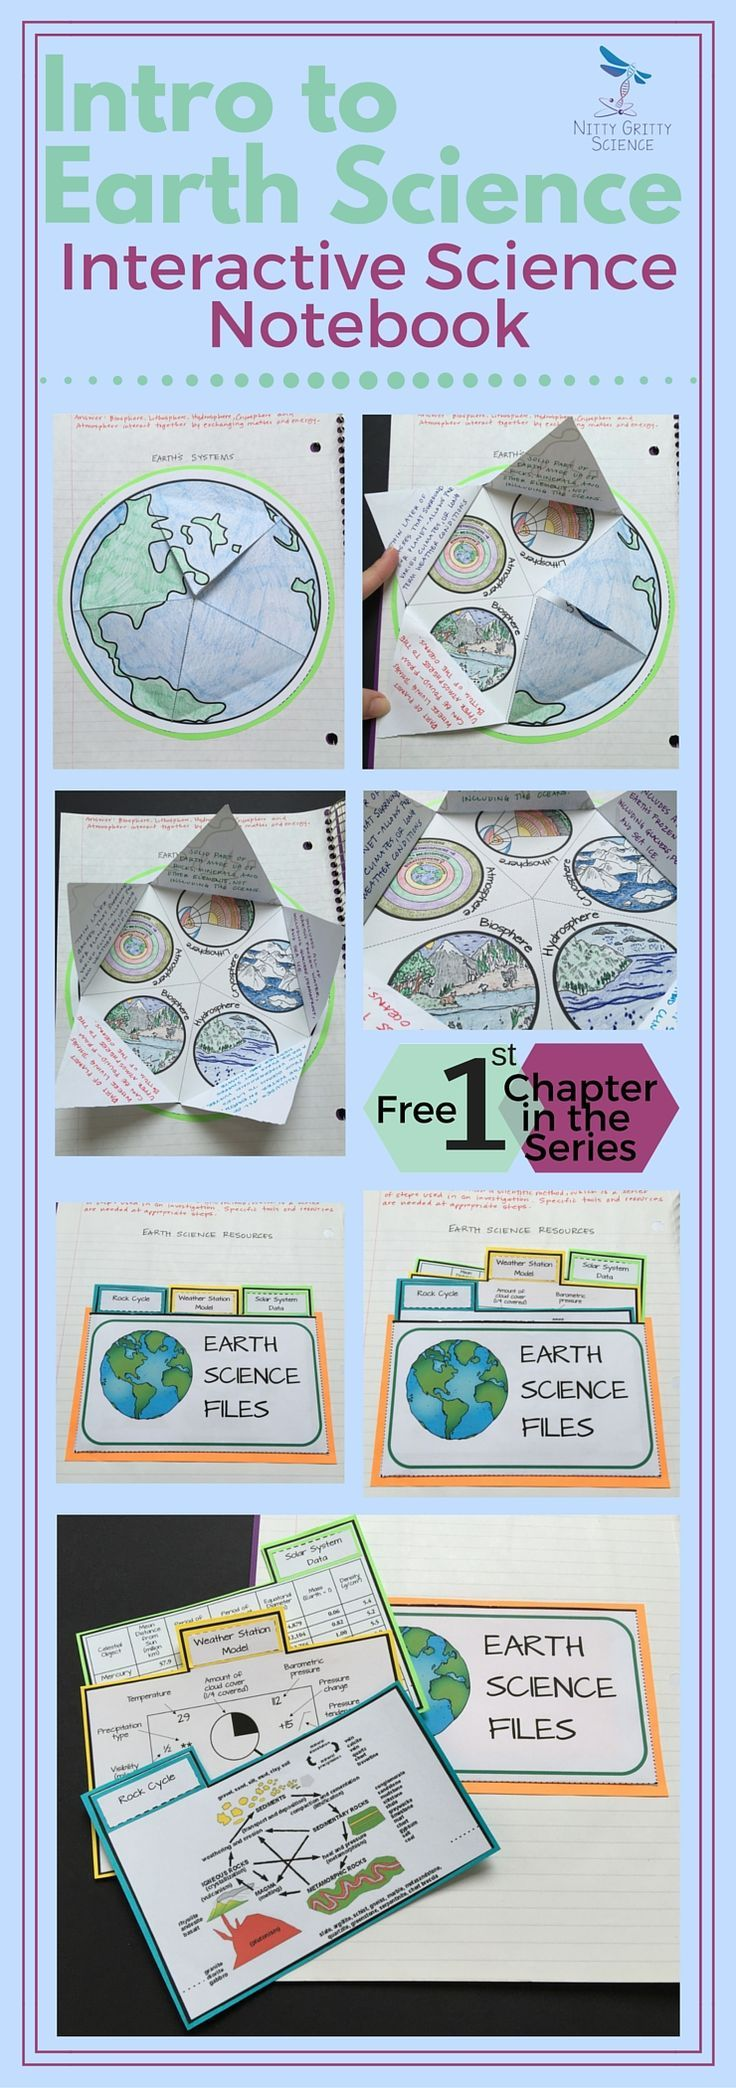 Start the school year off right with this FREE first chapter of The Earth Science Interactive Notebook series: Intro to Earth Science. The concepts in this chapter will introduce some key vocabulary and enable students to start understanding the different systems of Earth and all the branches of science that Earth Science entails. Each chapter in the series will showcase many activities for the students (both middle and high school) to process the information given by teachers.